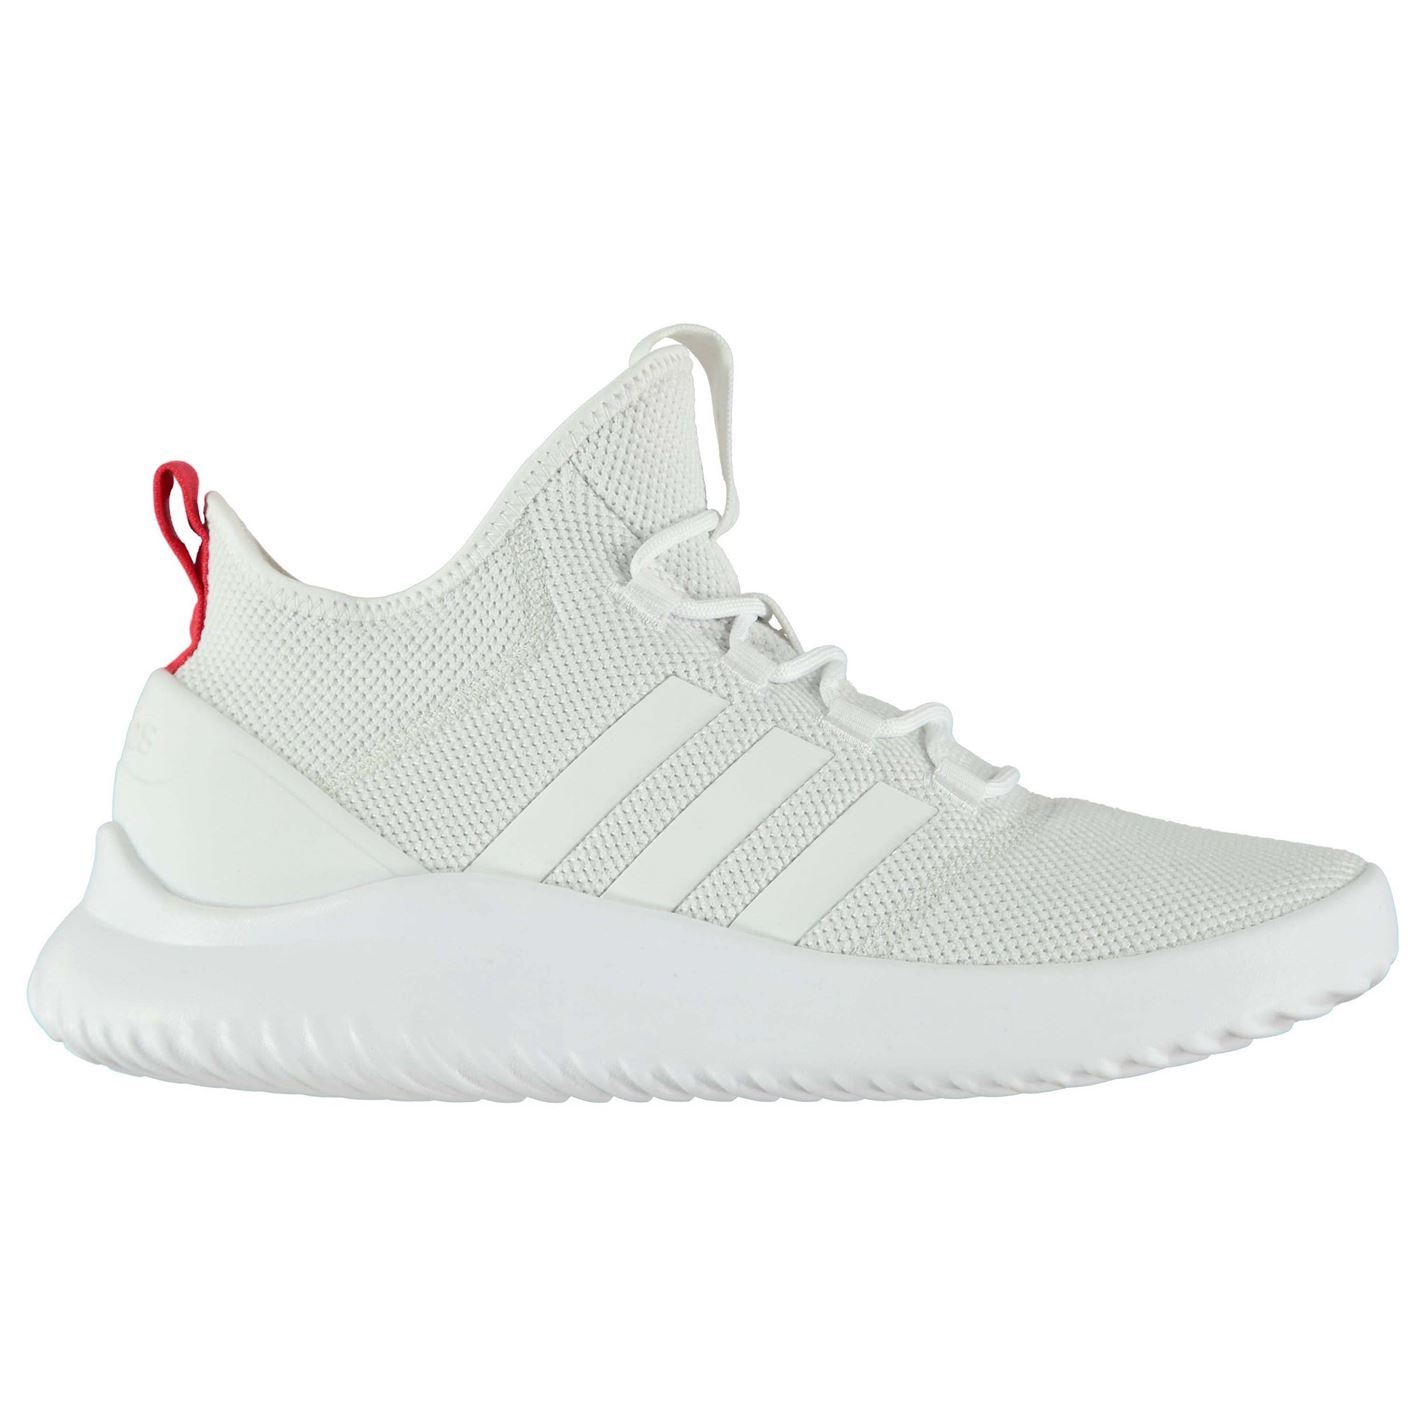 Adidas Homme Cloudfoam Ultimate B Ball Baskets Patins Lacets Knit Stretch-